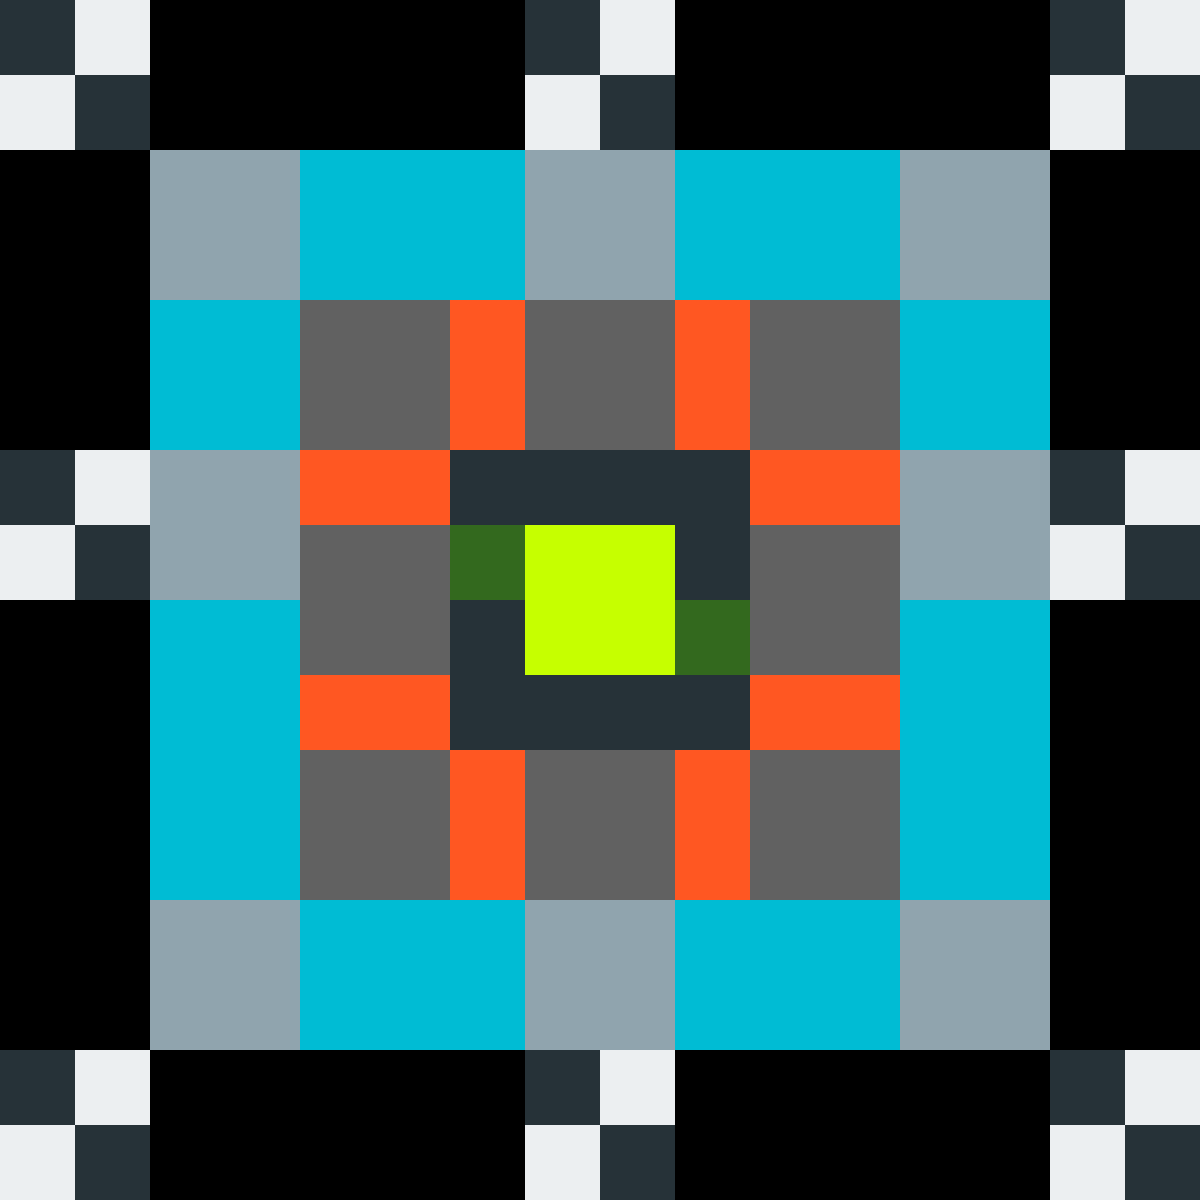 Cool Square / Background by Dragon-Warrior